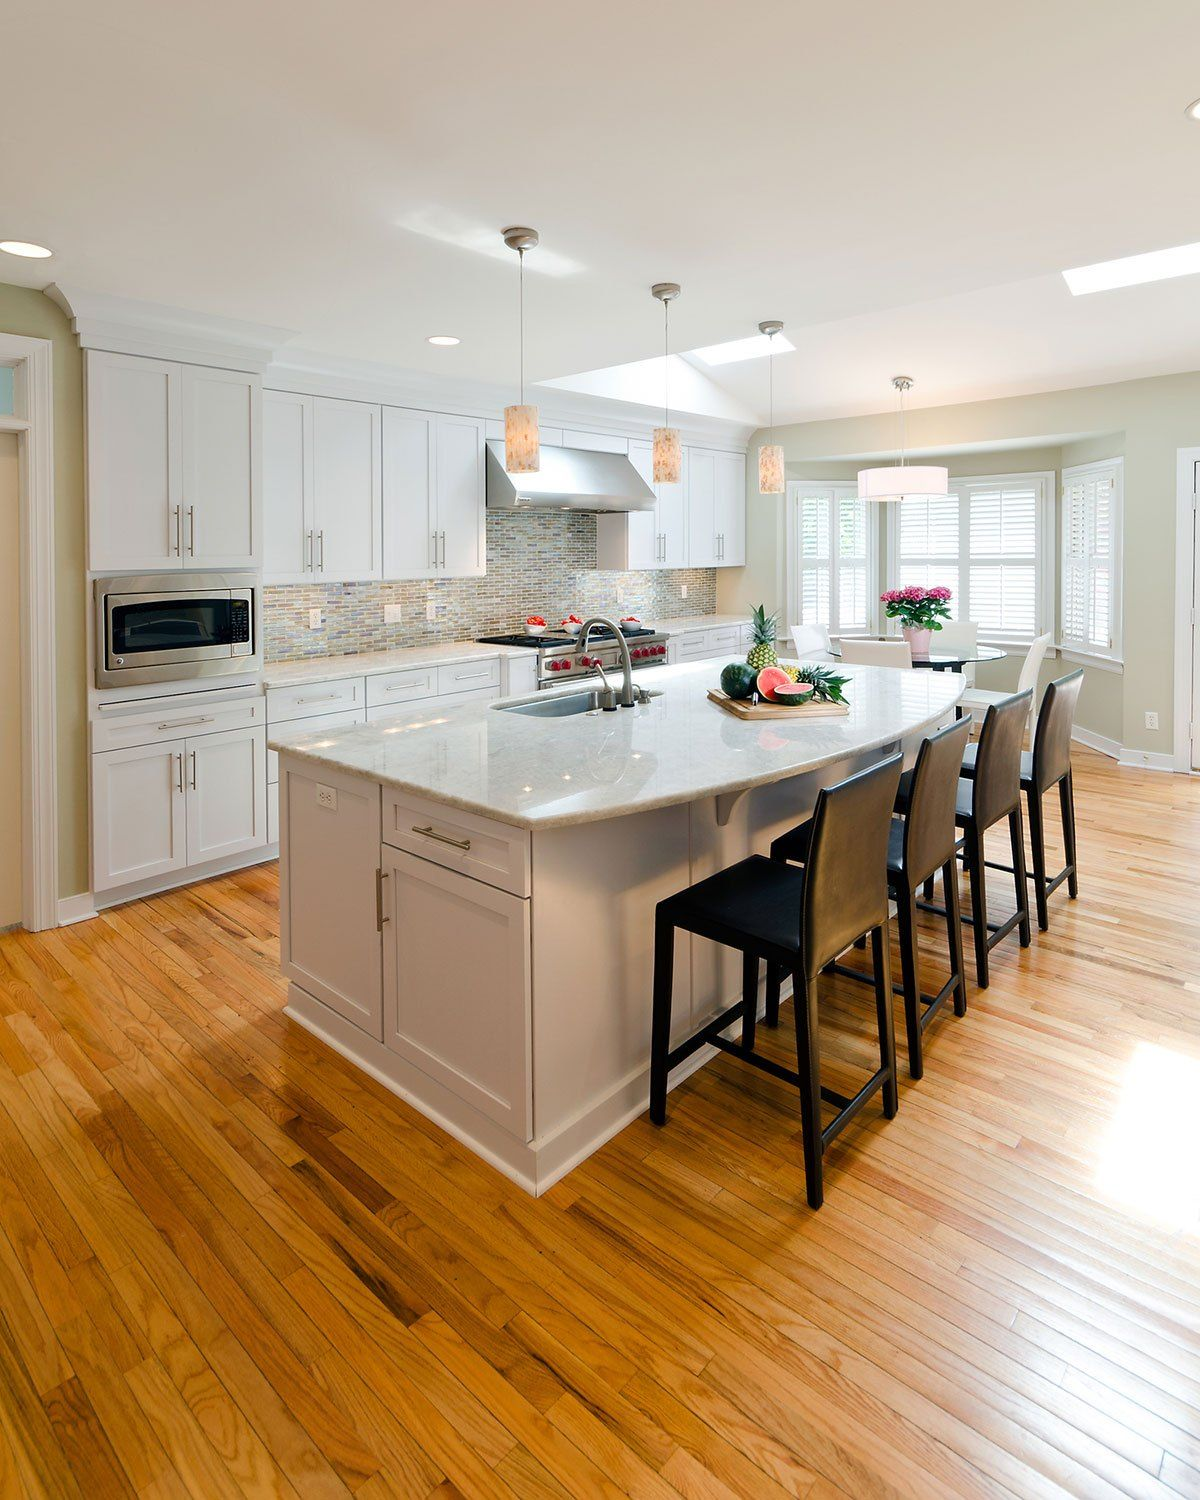 Cuisine Blanc Et Marron: Top 25 Best White Granite Colors For Kitchen Countertops